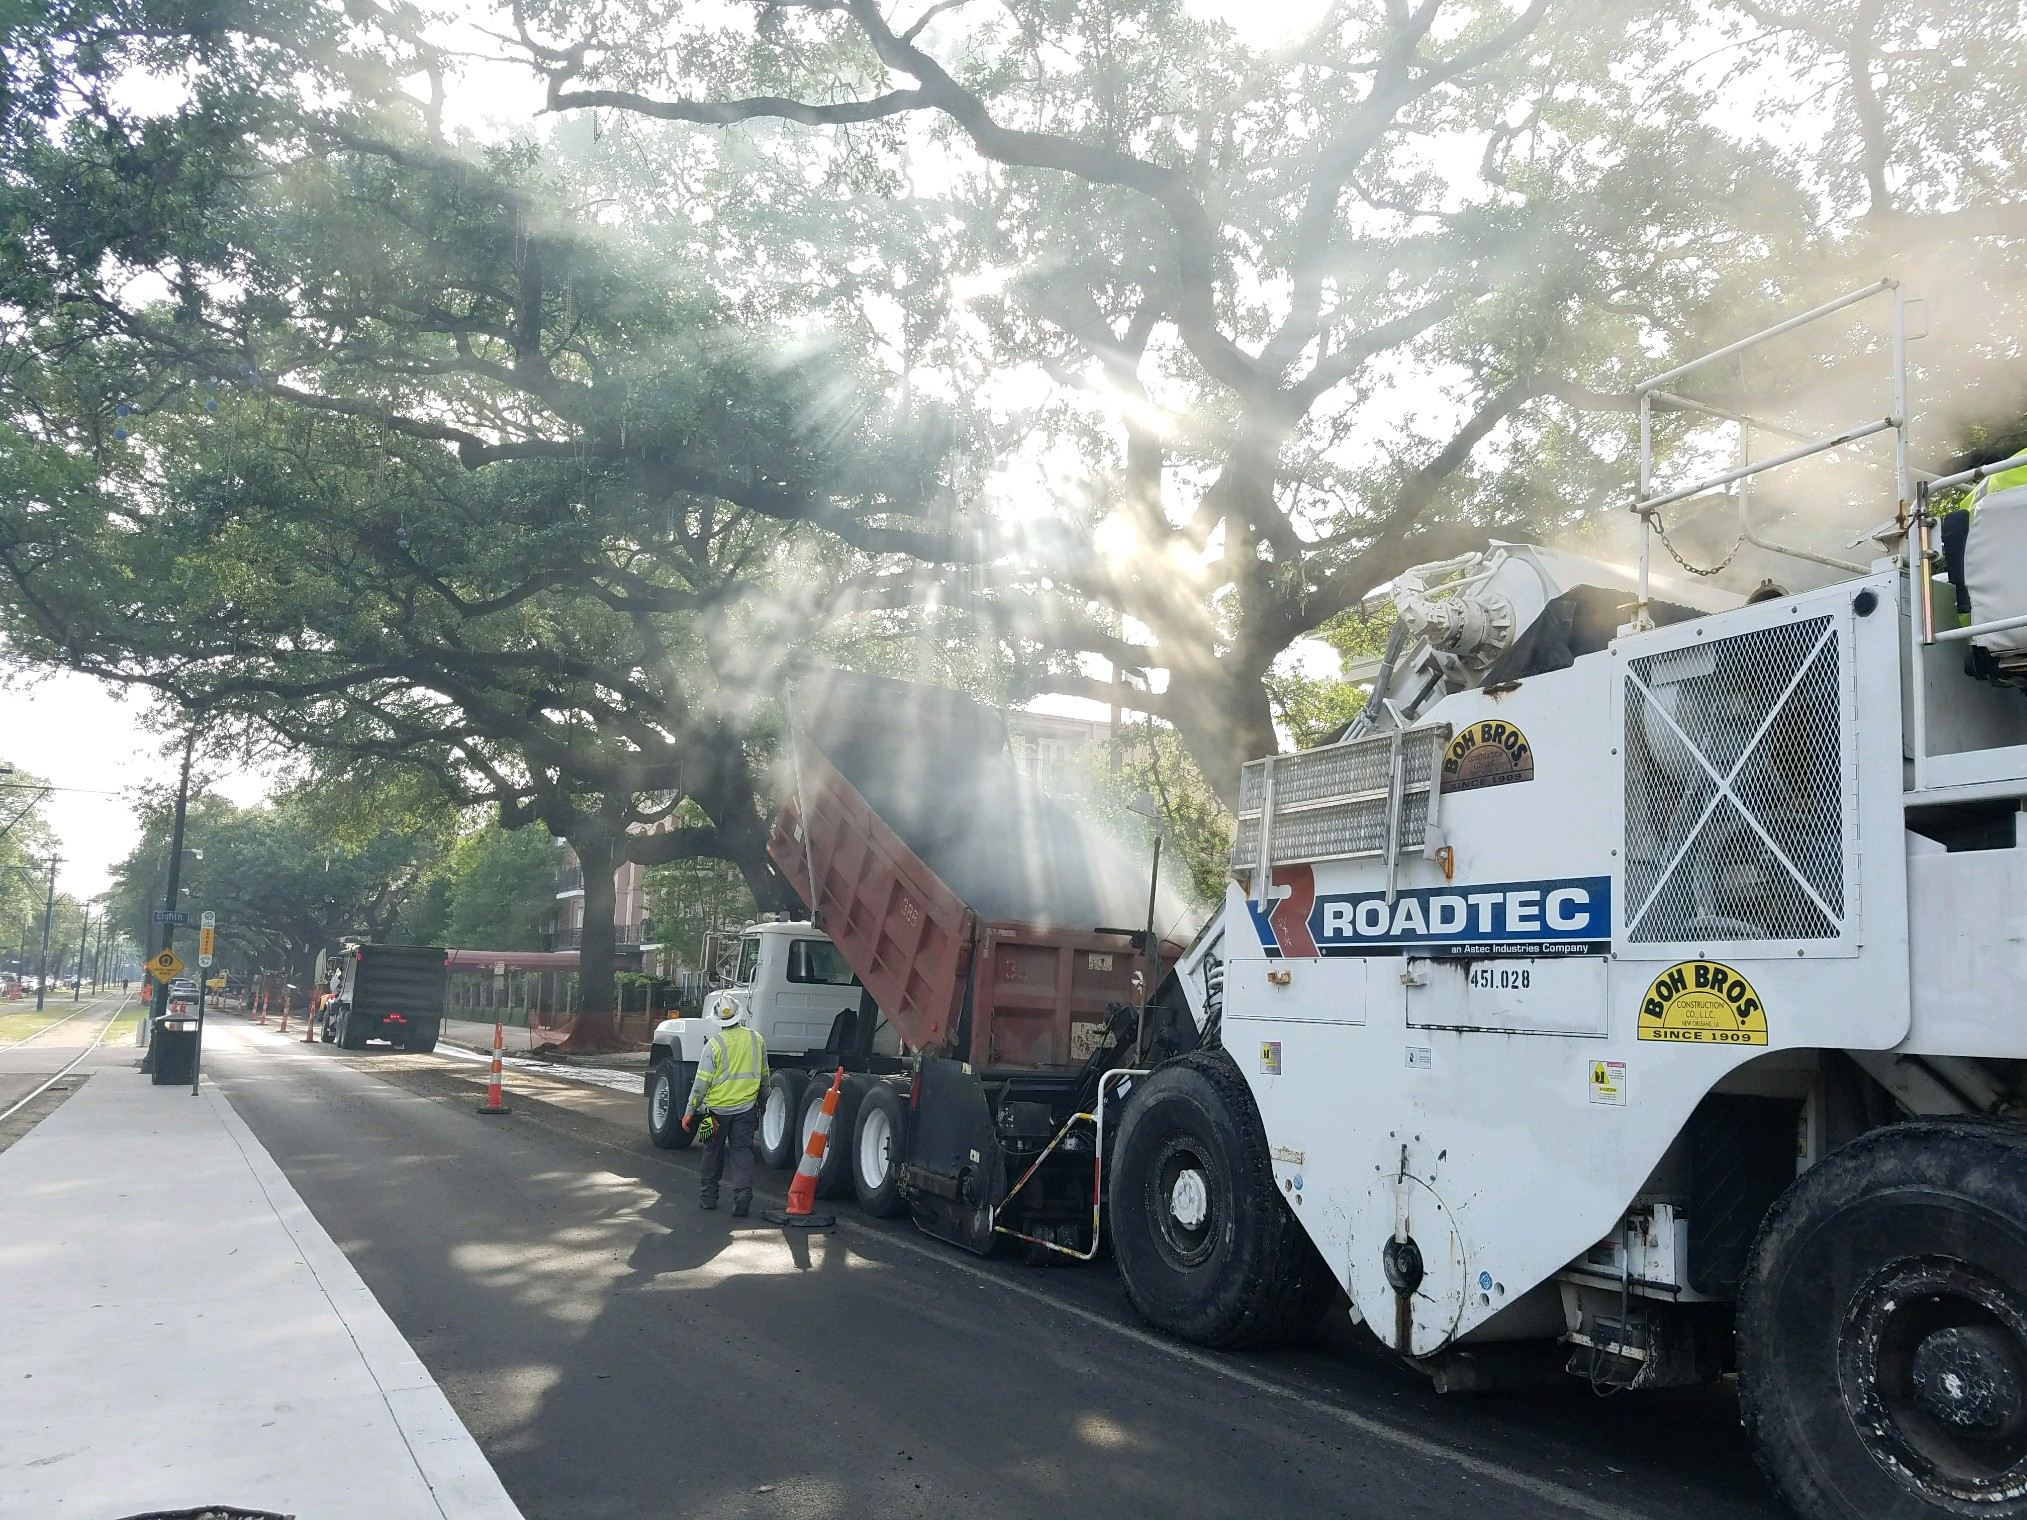 Large Portion of Repaving Finished on St. Charles Ave. Project